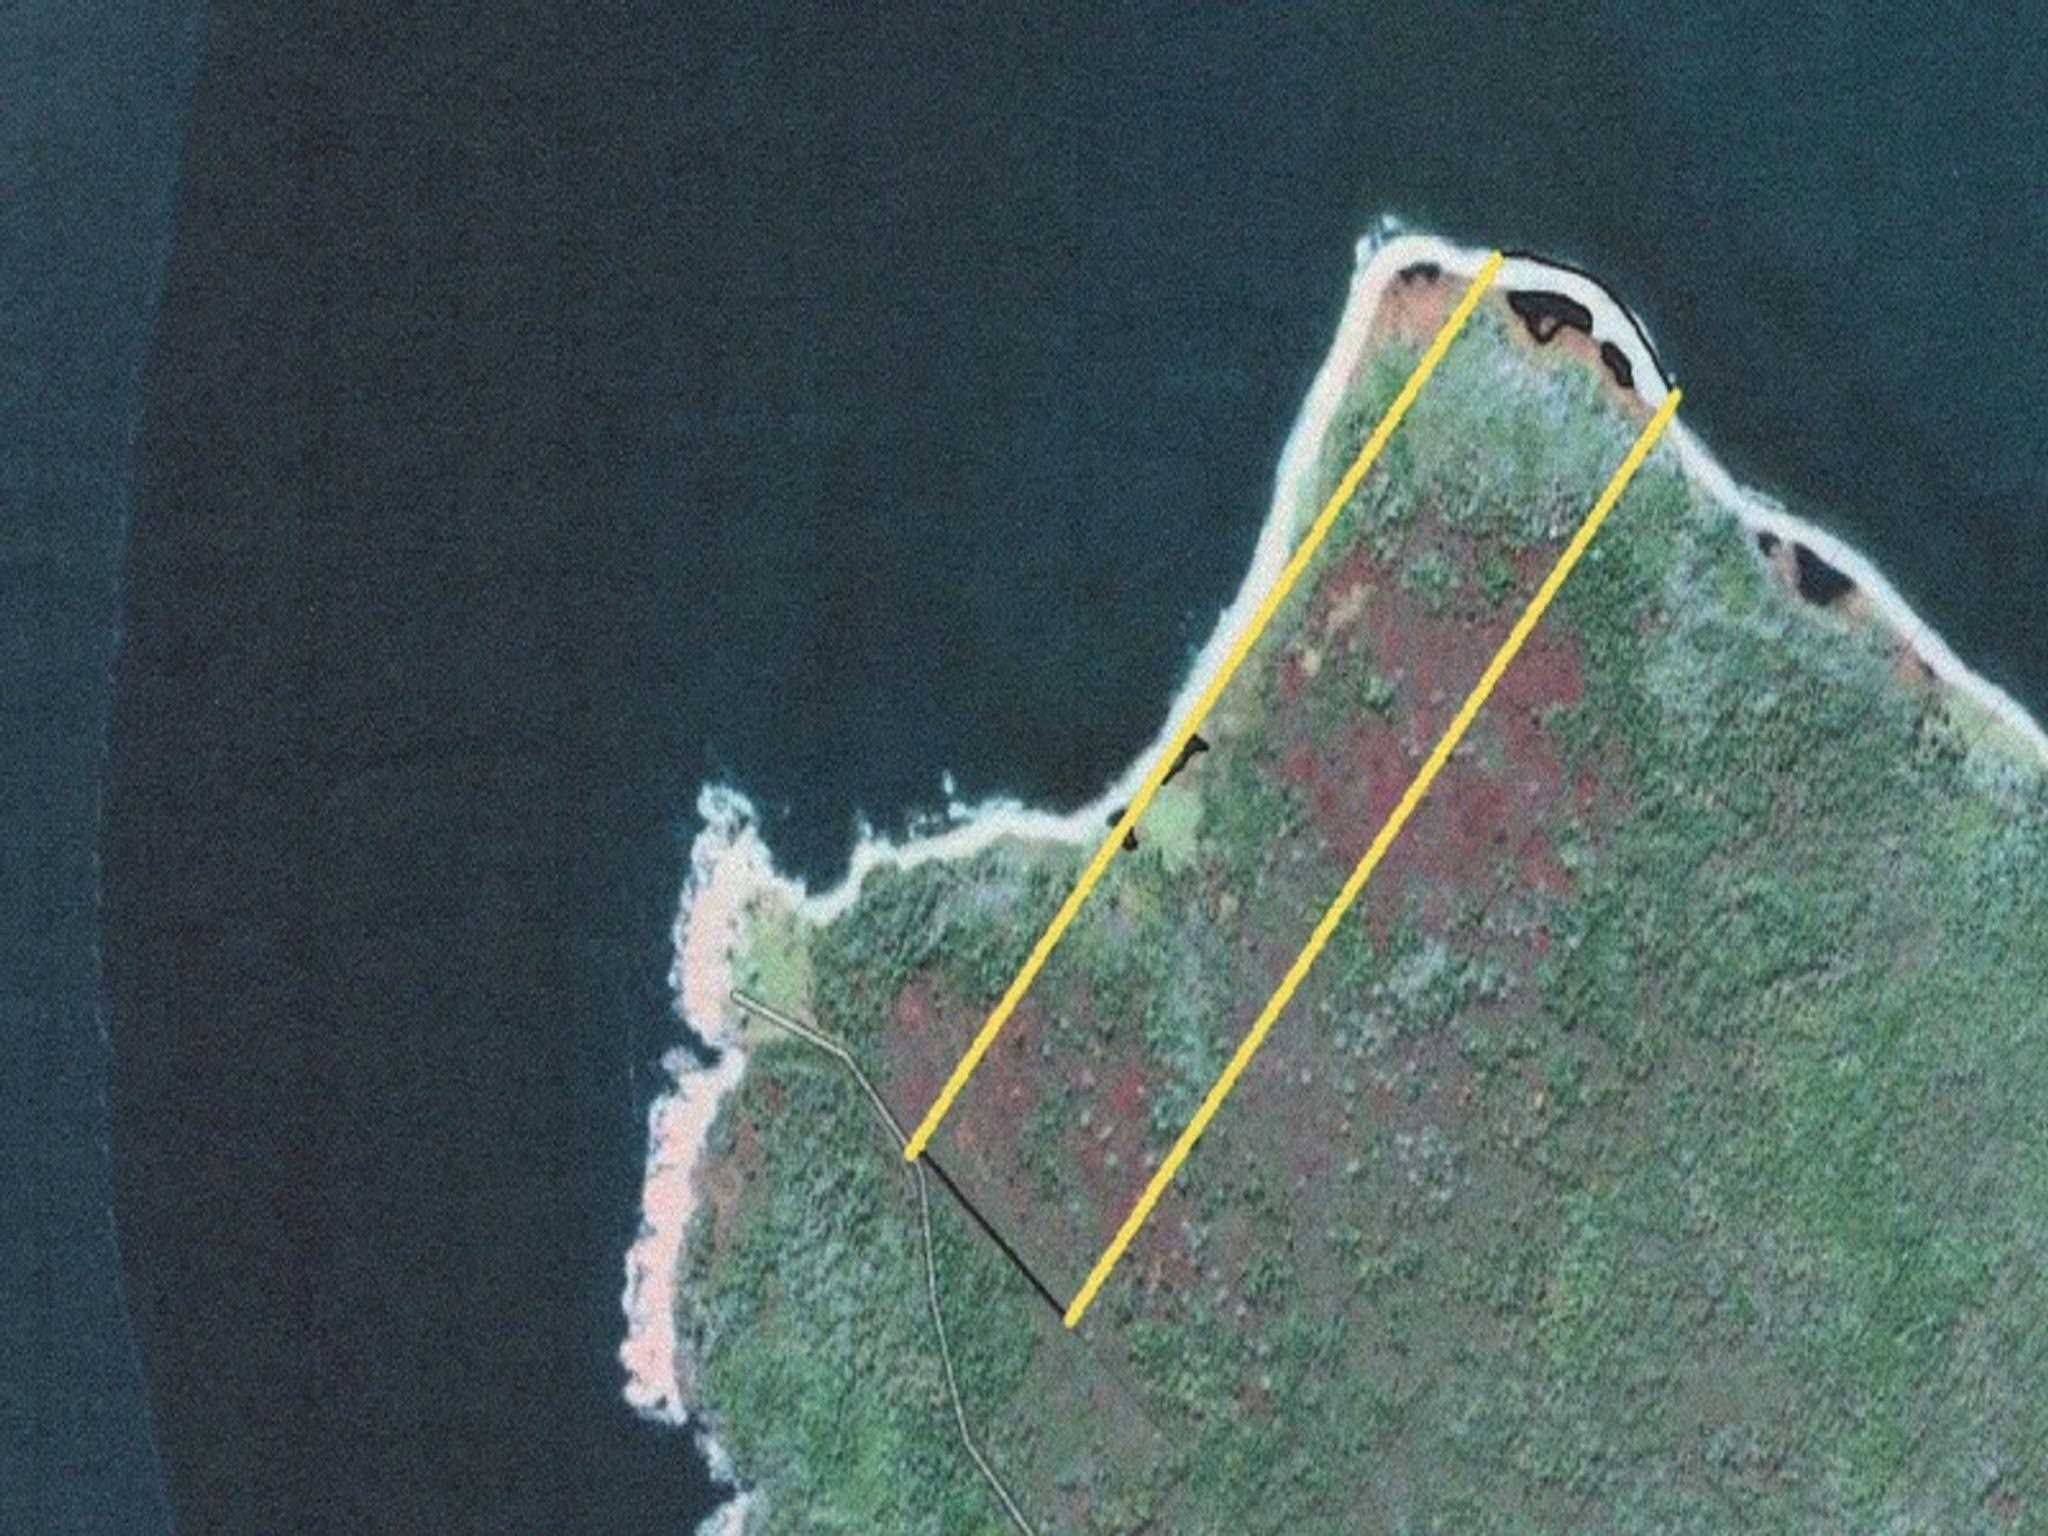 Main Photo: Lots 19/20 McNutts Island Road in McNutts Island: 407-Shelburne County Vacant Land for sale (South Shore)  : MLS®# 202119428